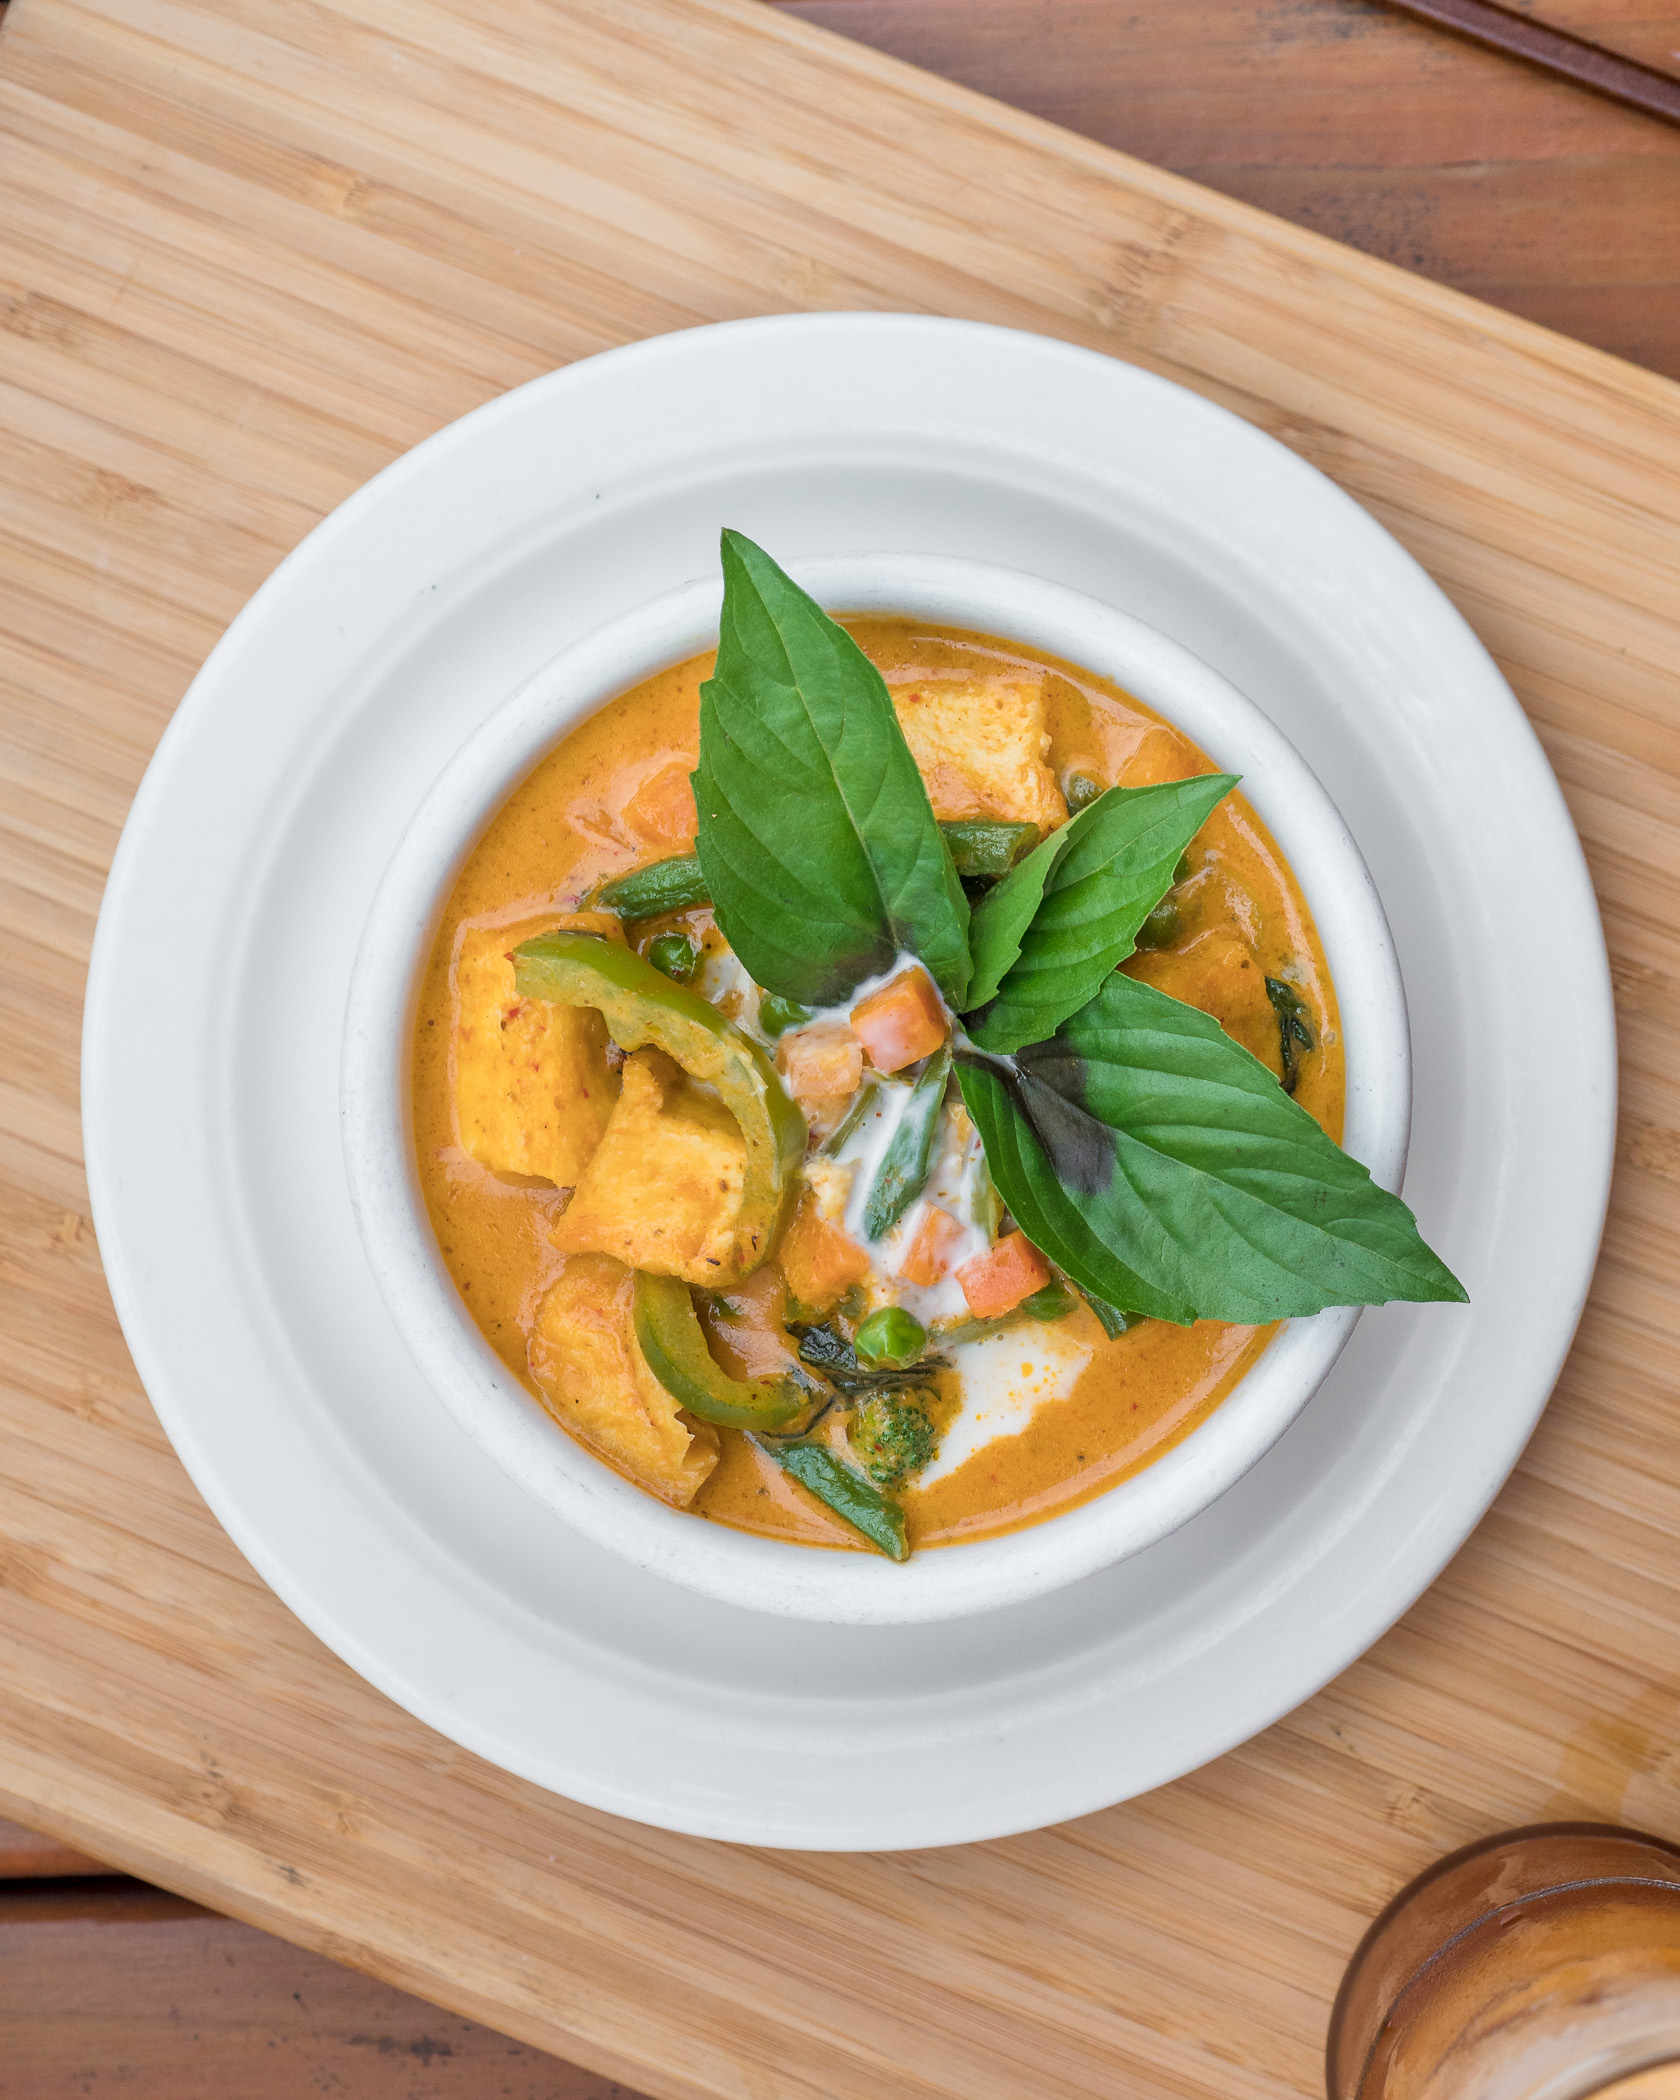 fare photo portland oregon food photographer photography jeremy pawlowski texas austin amarillo classic thai cuisine tofu